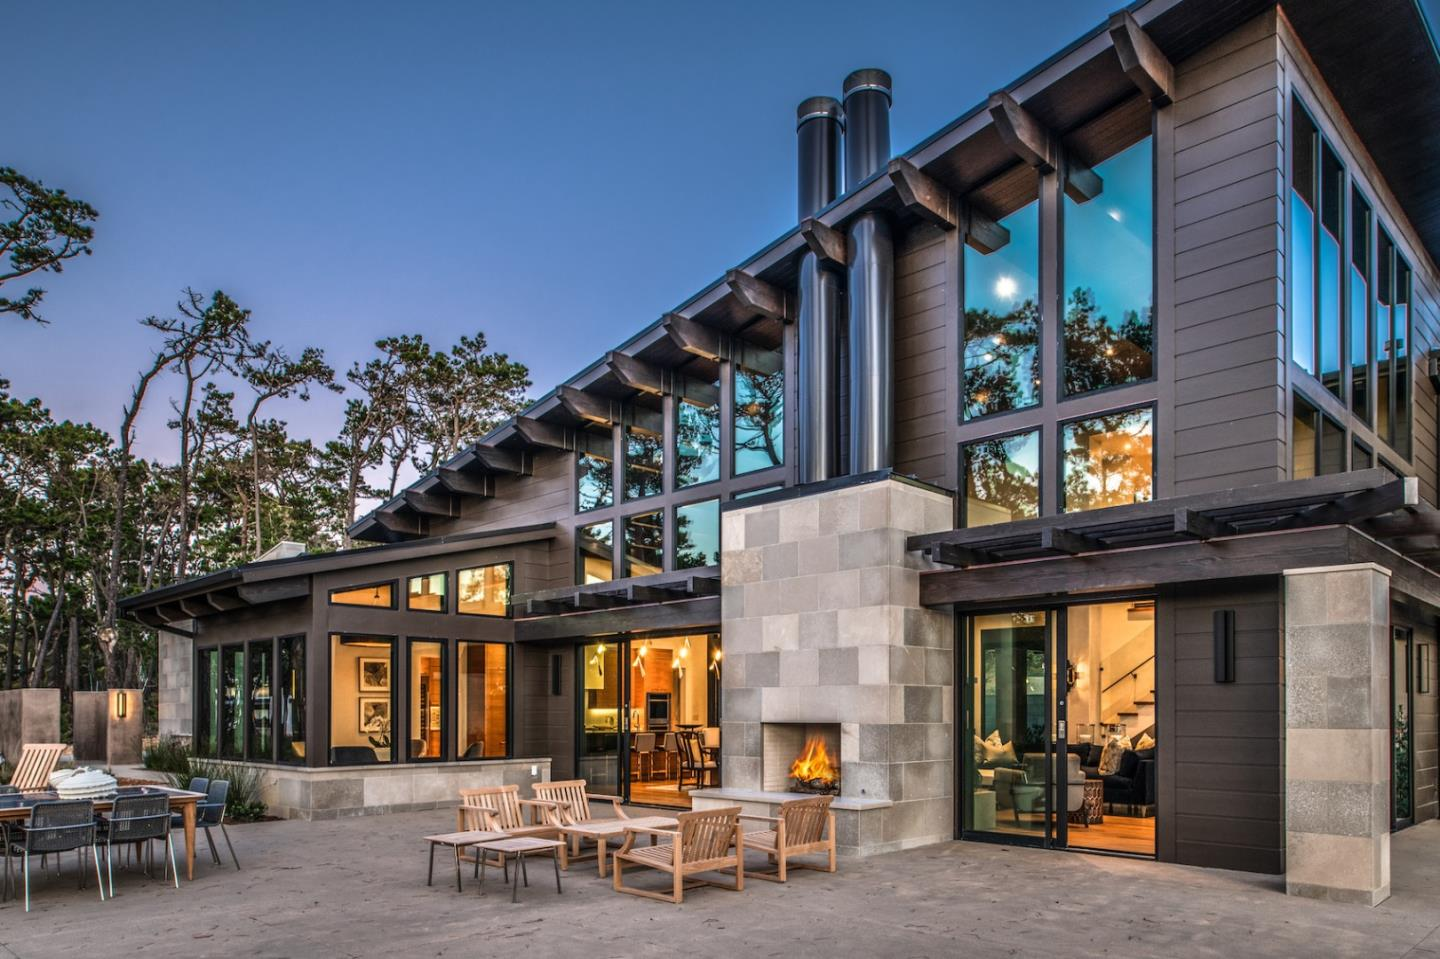 24 Poppy LN, Pebble Beach, California